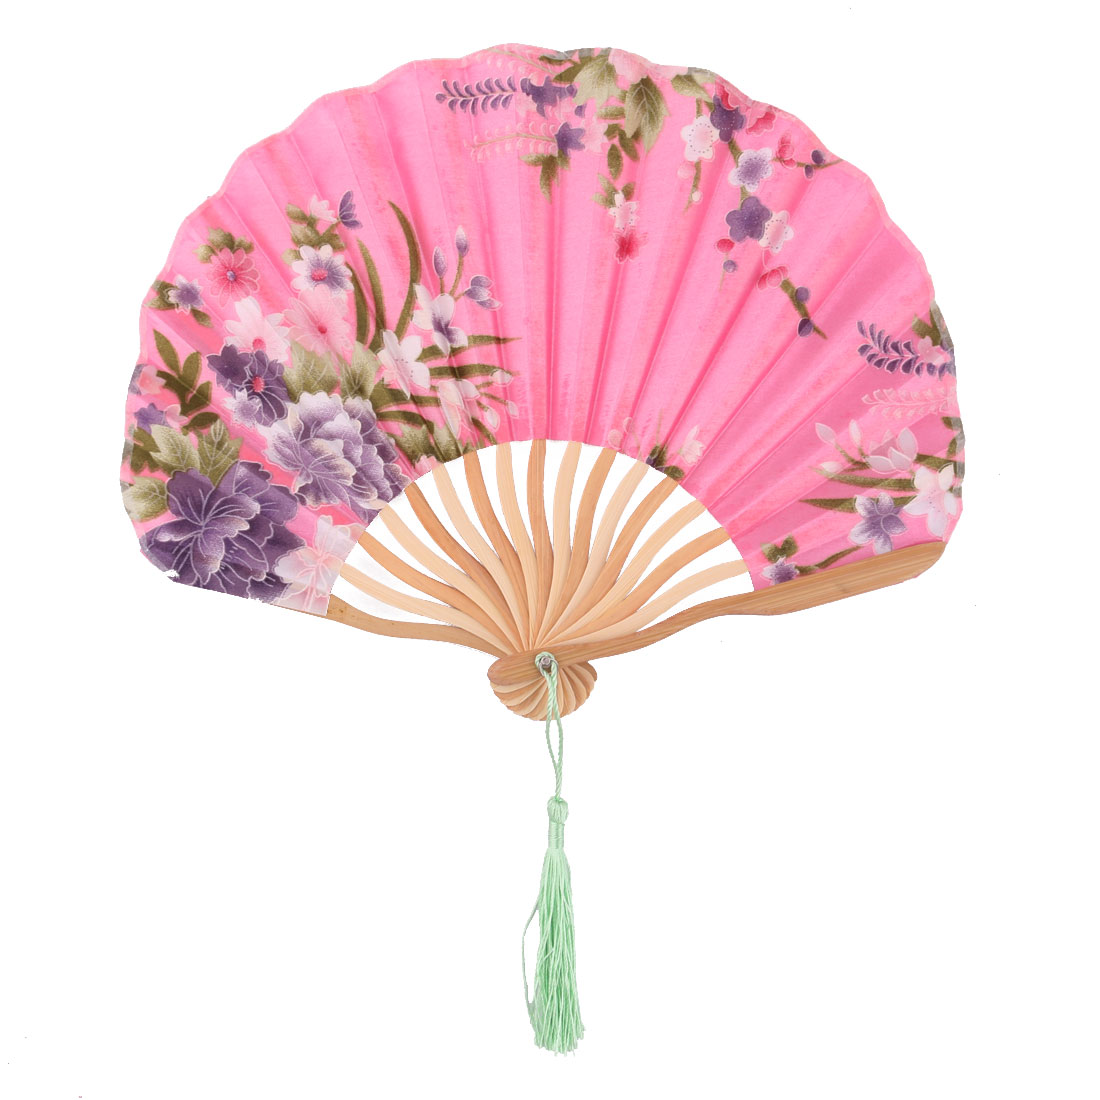 Women Dancing Bamboo Frame Flower Pattern Handmade Folding Fan Pink 34cm Length